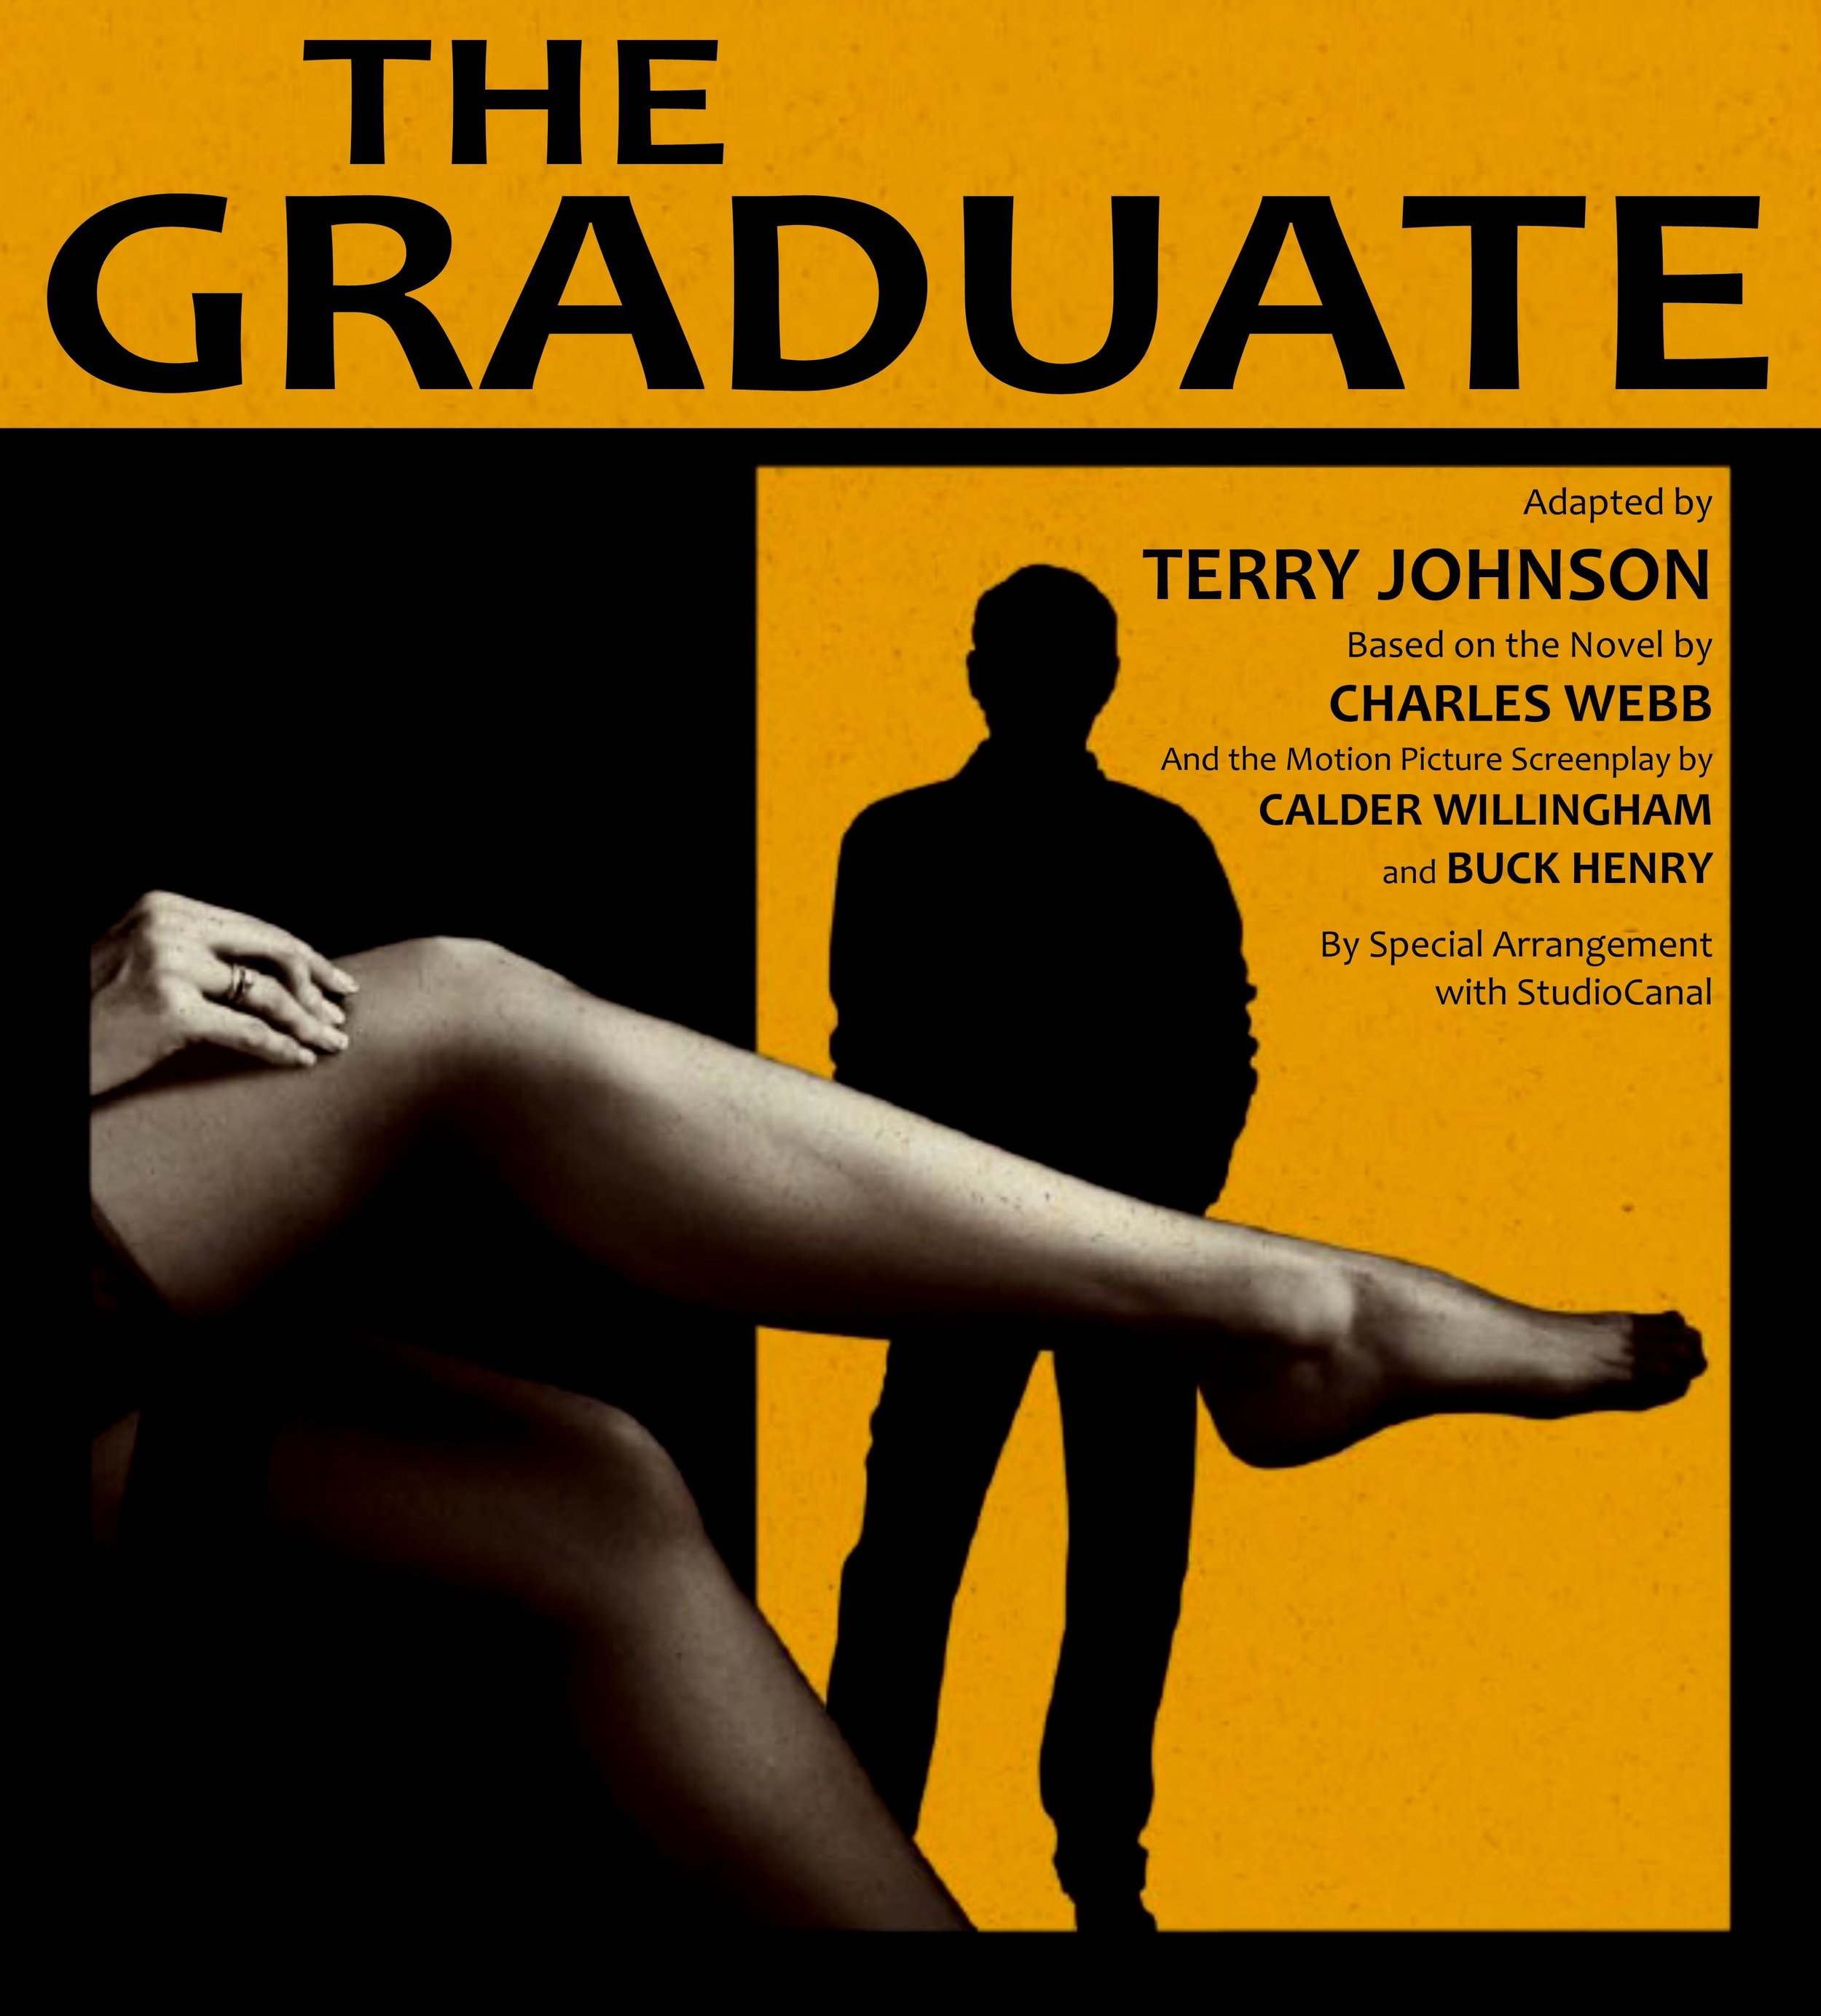 the graduate web image.jpg